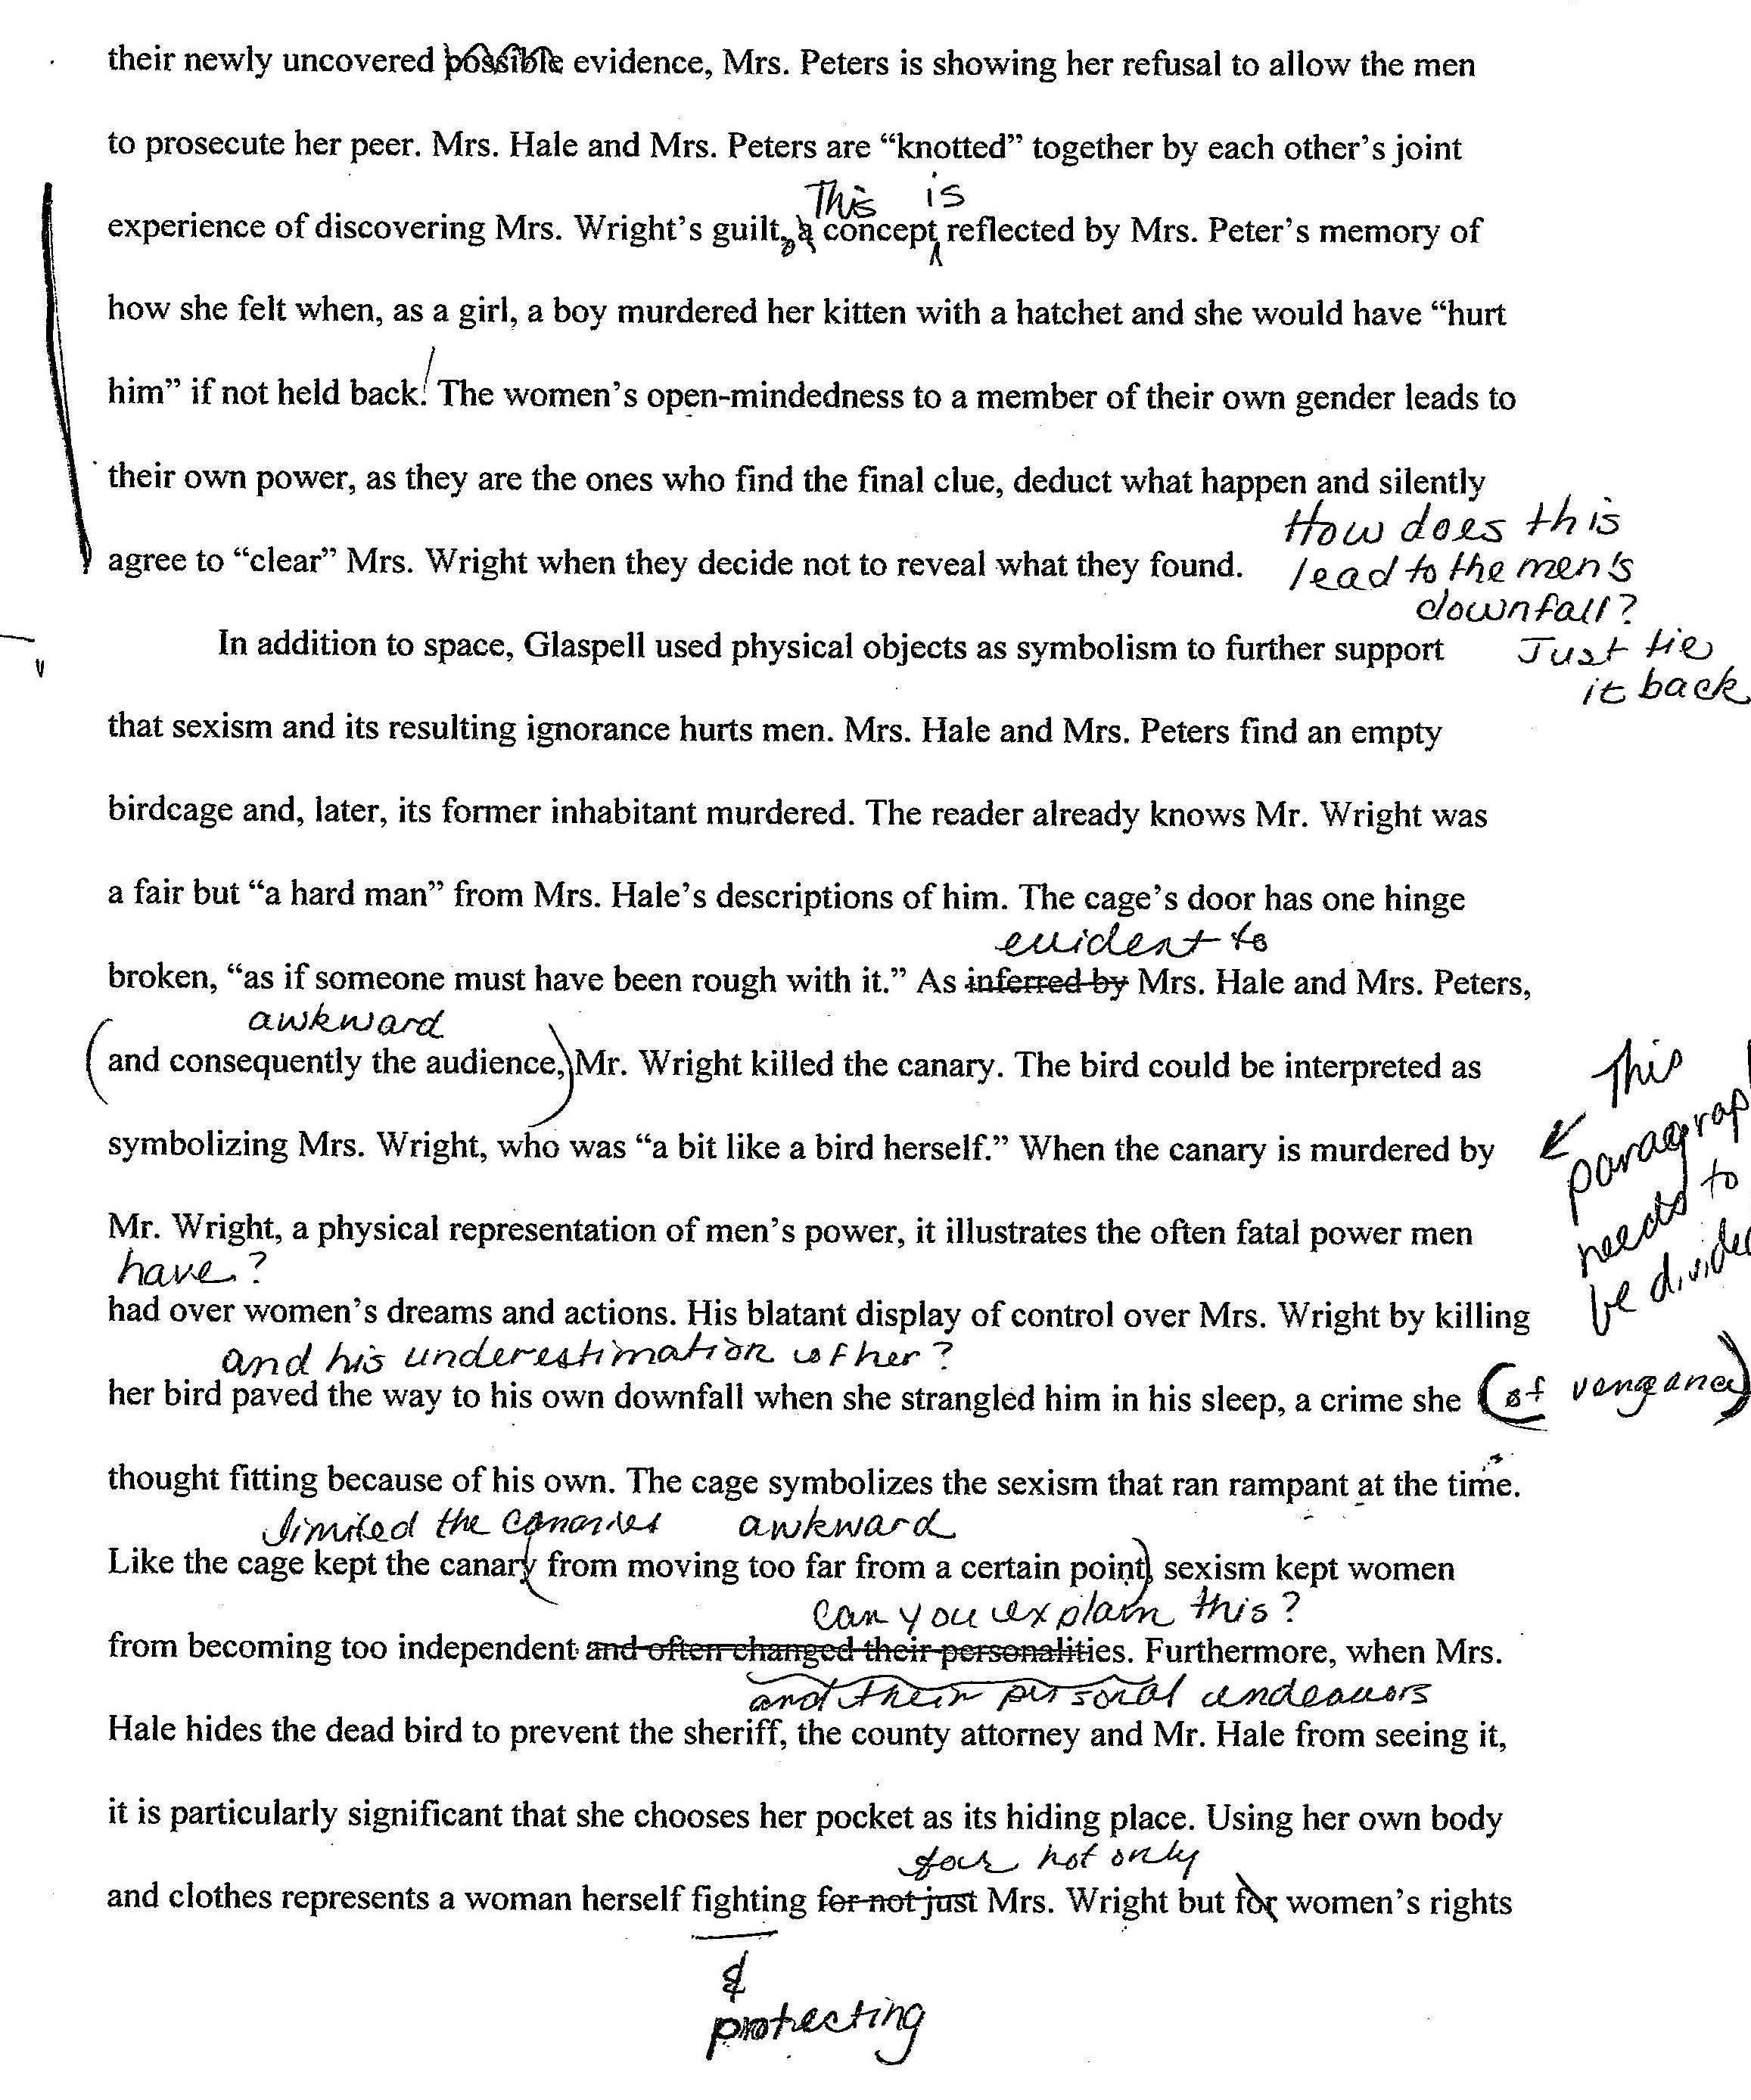 002 Trifles Essay Example Formidable Conclusion Prompts Full